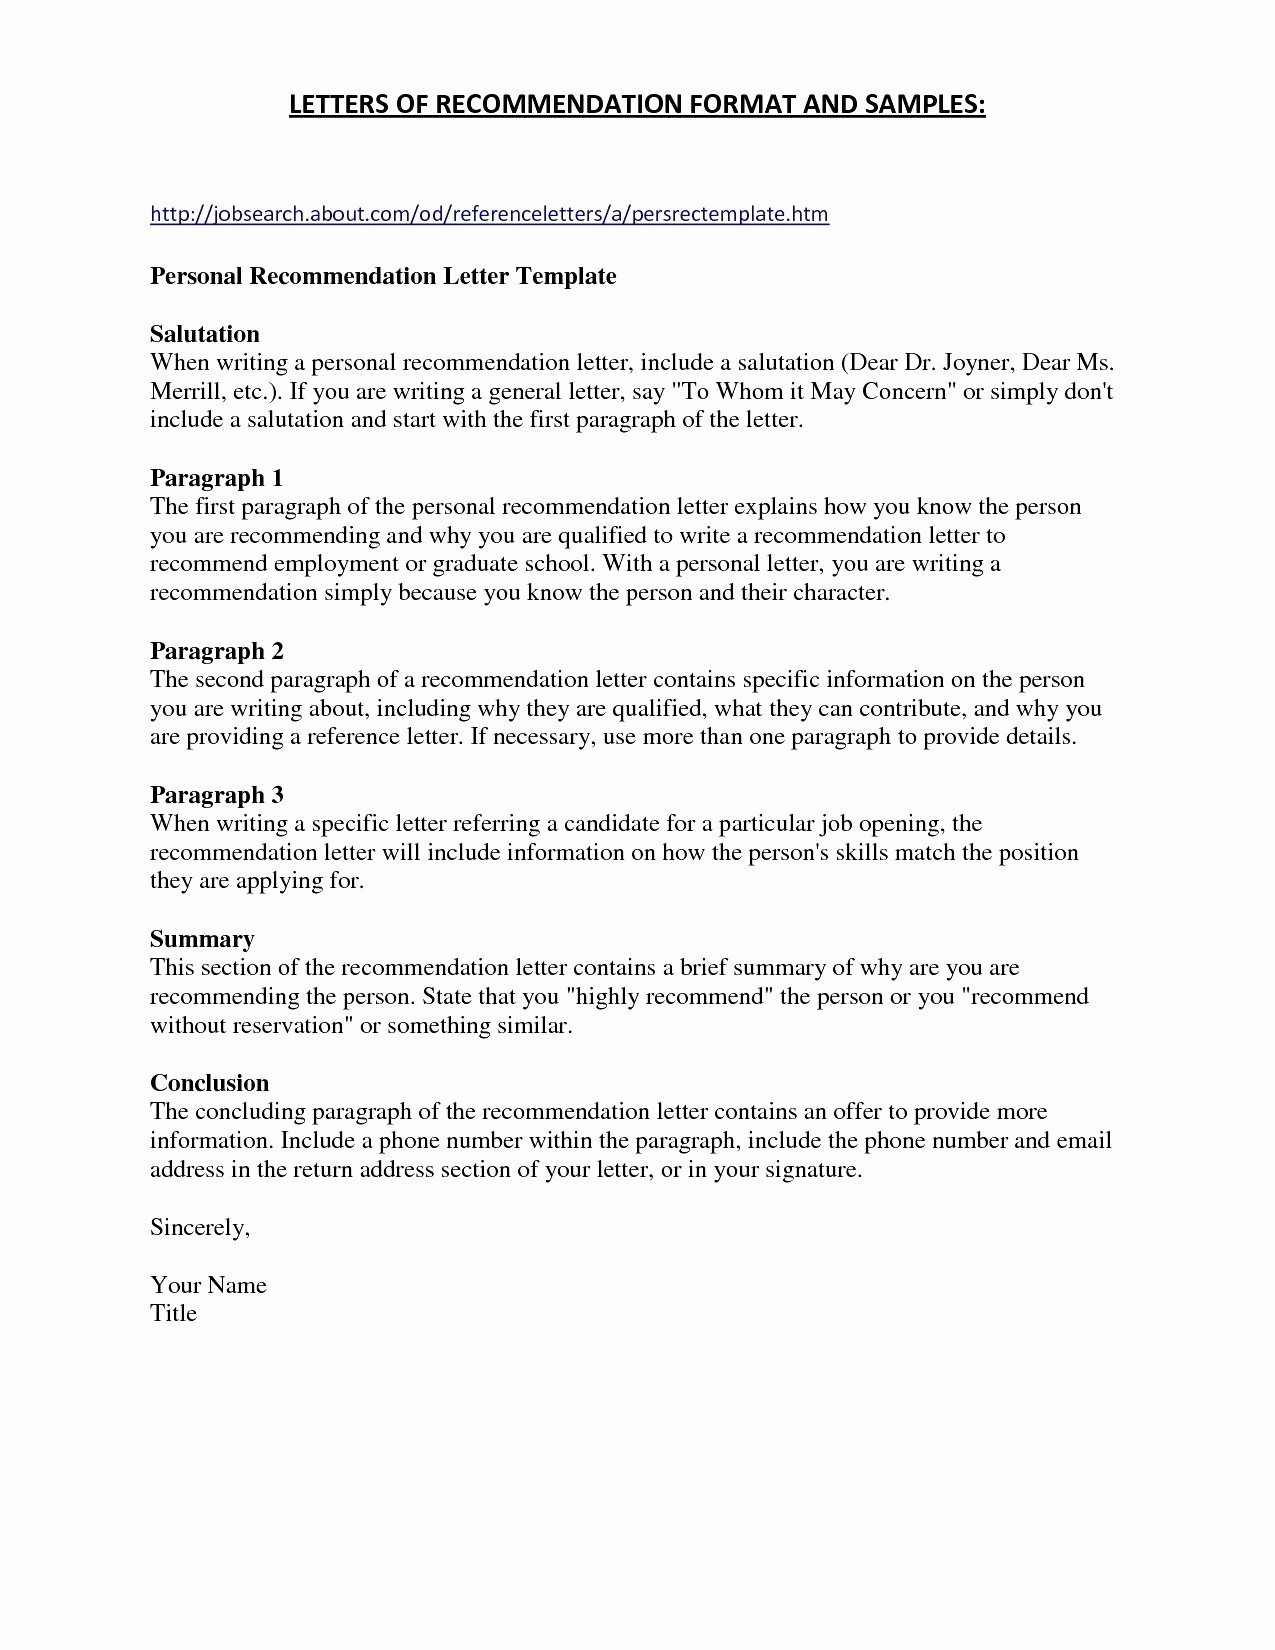 mechanical engineering resume objective example-Mechanical Engineering Sample Resume Best Electrical Engineer Resume Objective Positive Resume For Electrical 16-e